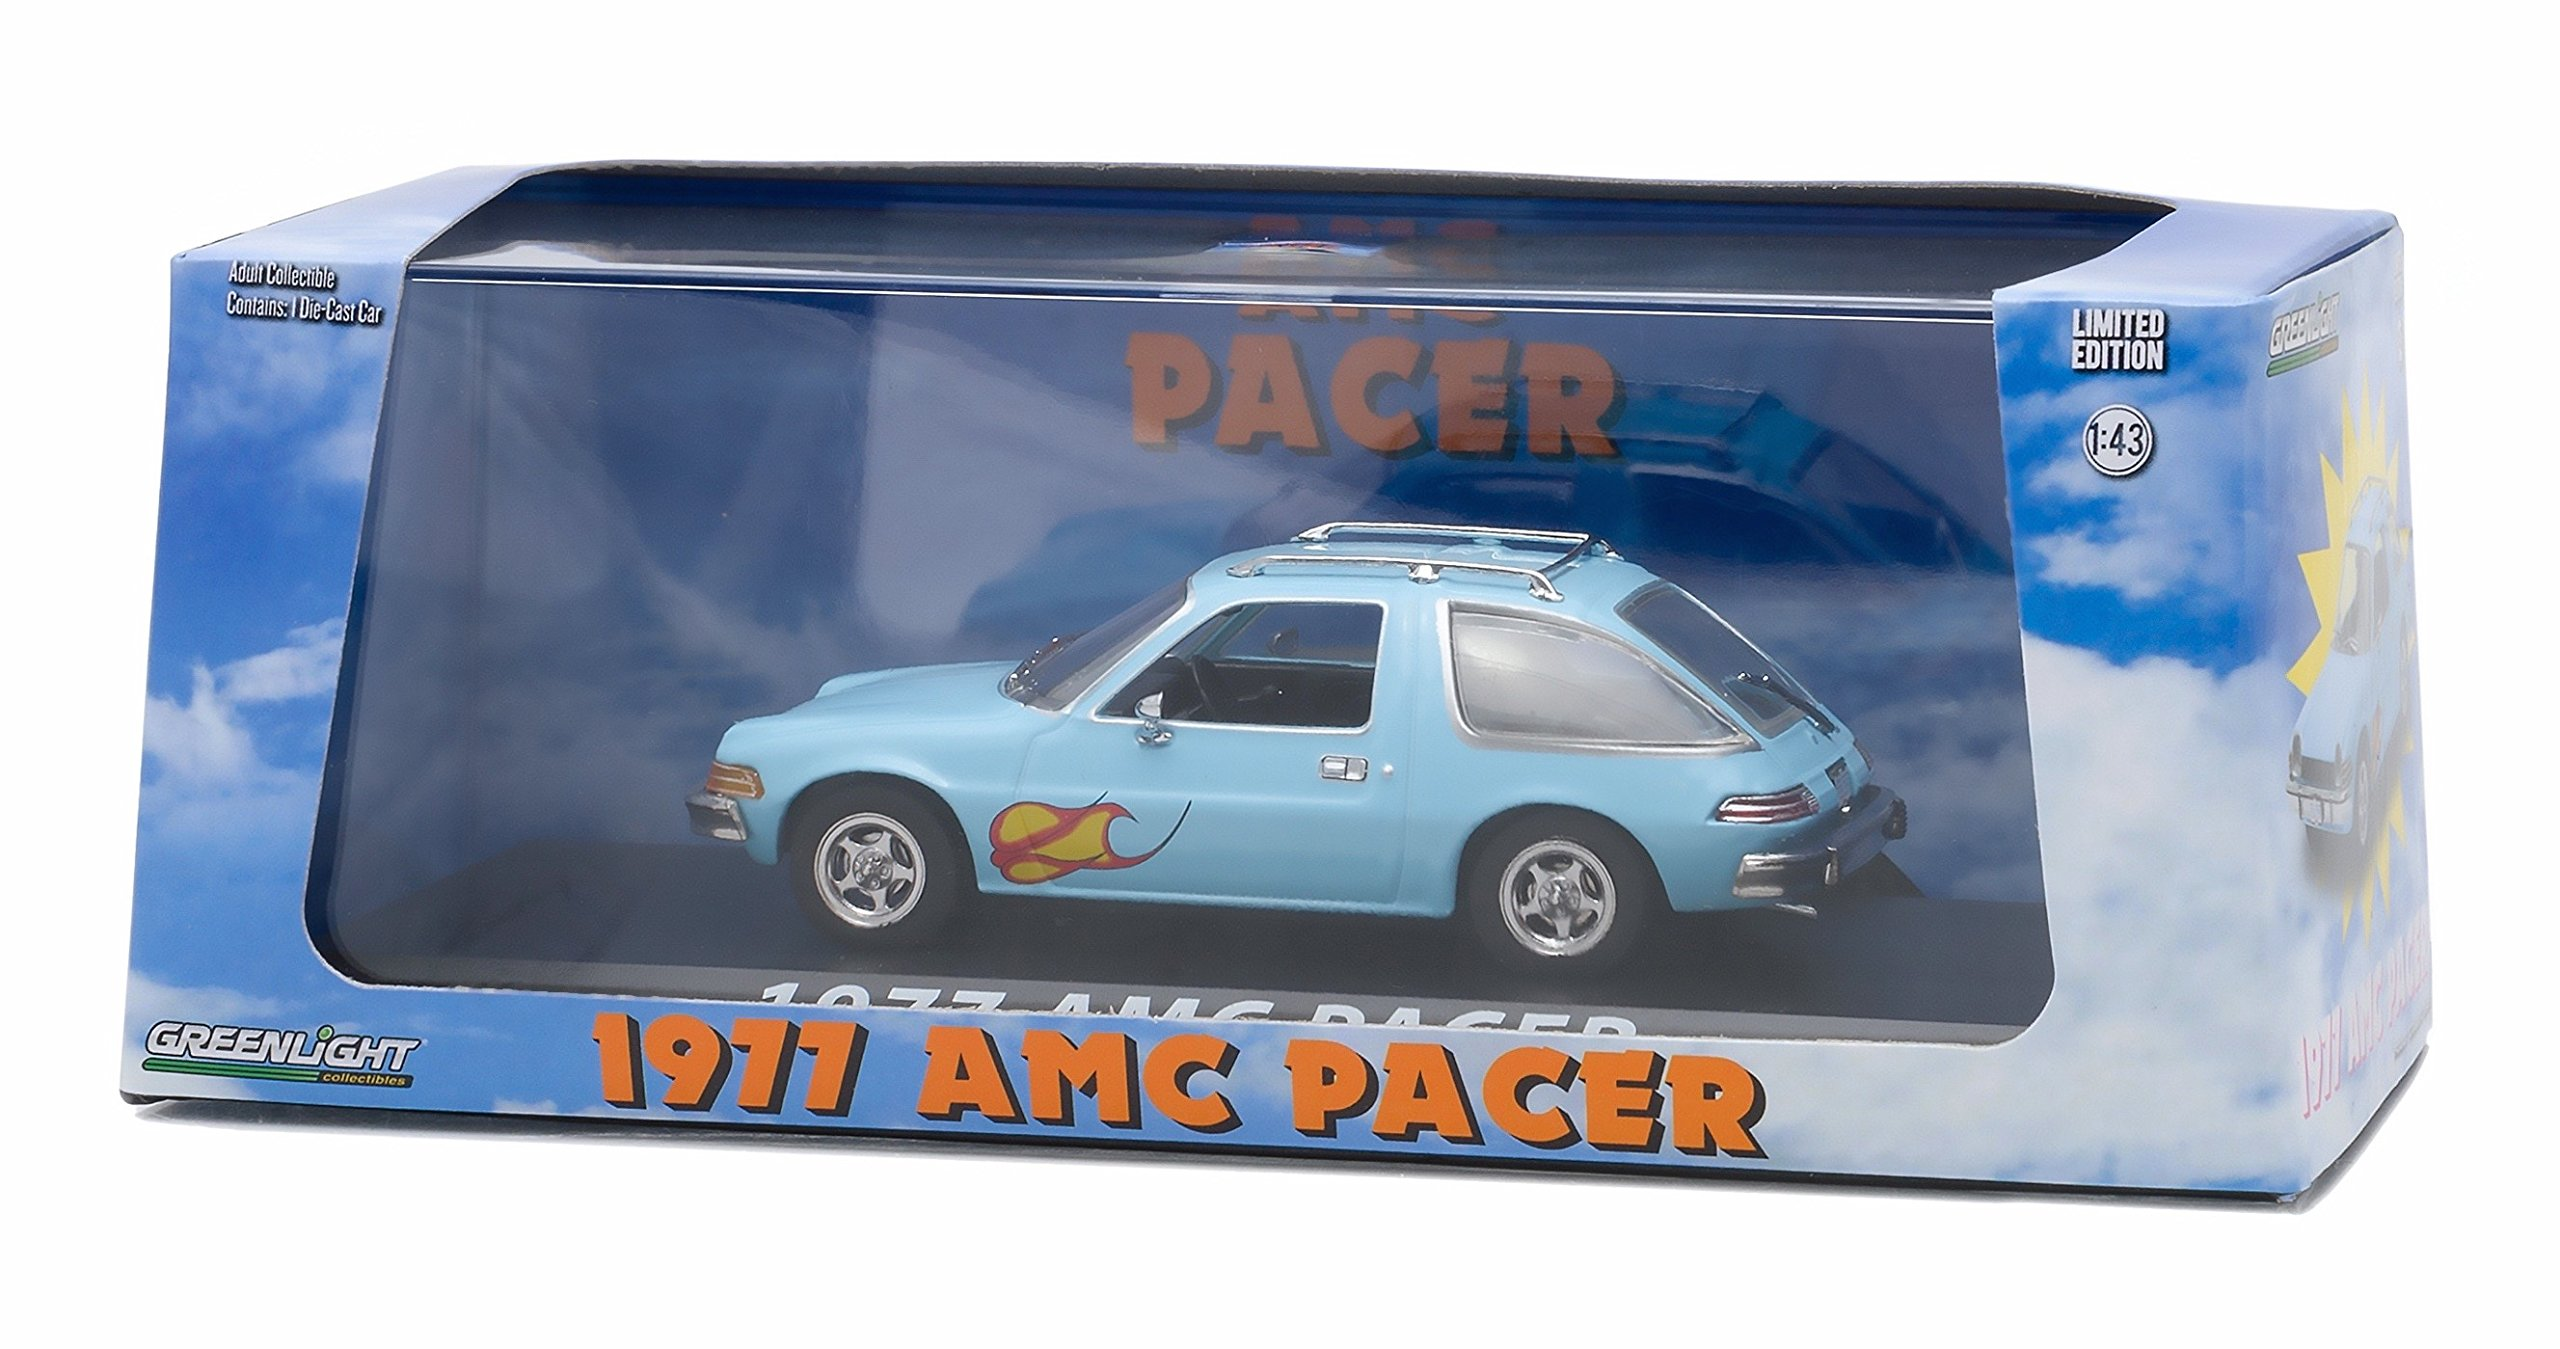 Buy Pacer Now!